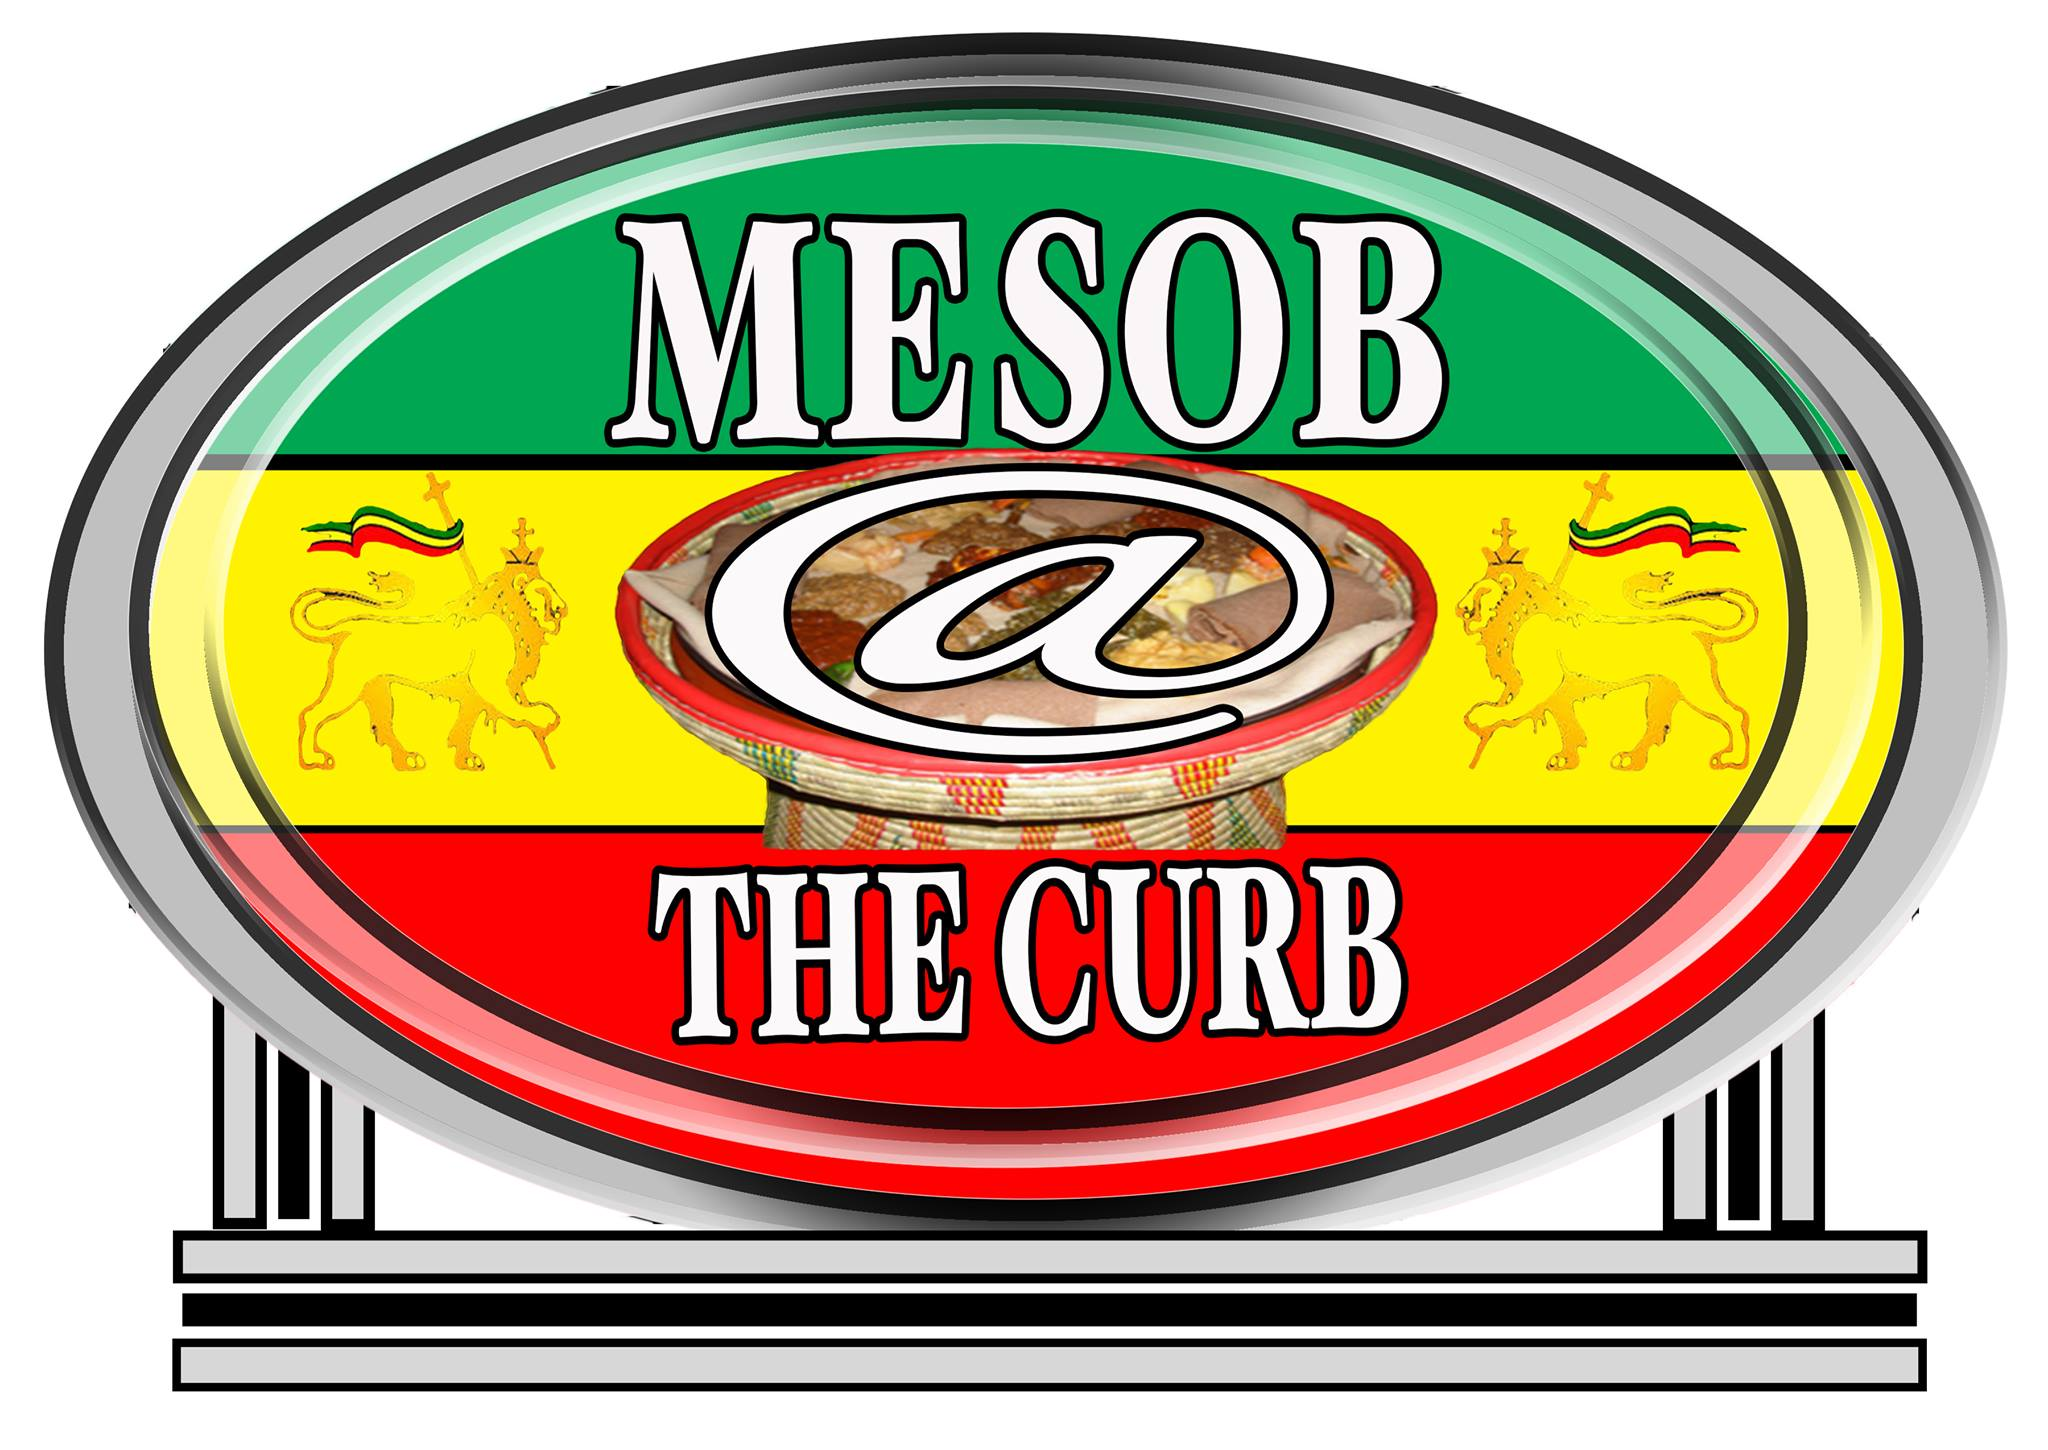 mesob-at-the-curb-truck-seattle.jpg